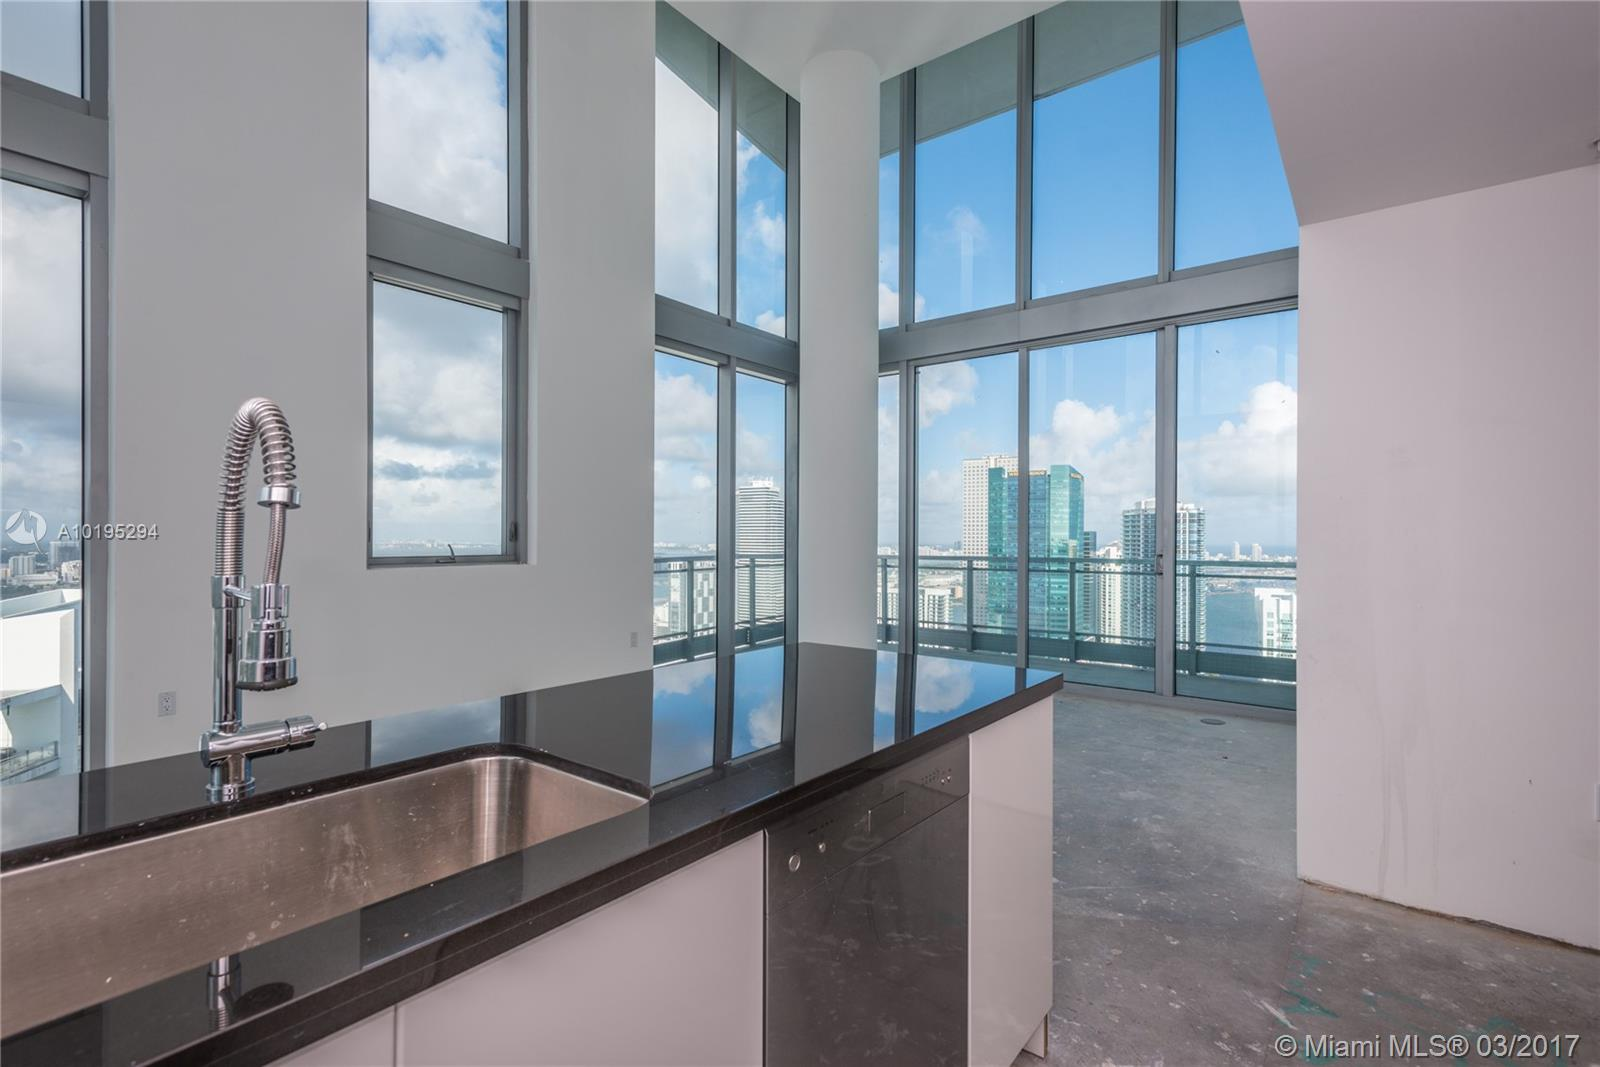 Best Corner Ph At Mint. This Designer Ready Ph Features 3Br/2.5Ba With 270 Degree North, East & West Views Spanning All Of Miami Skyline. Stunning Double Height Floor-To-Ceiling Windows Frame Open Kitchen & Living Area Boasting Breathtaking Views Of Bay, Miami River, Aa Arena, South Beach & Distant Ocean Views. Master Suite Features Private Corner Balcony With Views Of The Bay & River. Ensuite Master Shower With Frosted Glass Adjacent To Room Has Direct Views, Dual Sinks, Separate Standard & Walk-In Closet Space. Design To Your Taste! Walking Distance To Brickell City Centre And Brickell Hotspots!